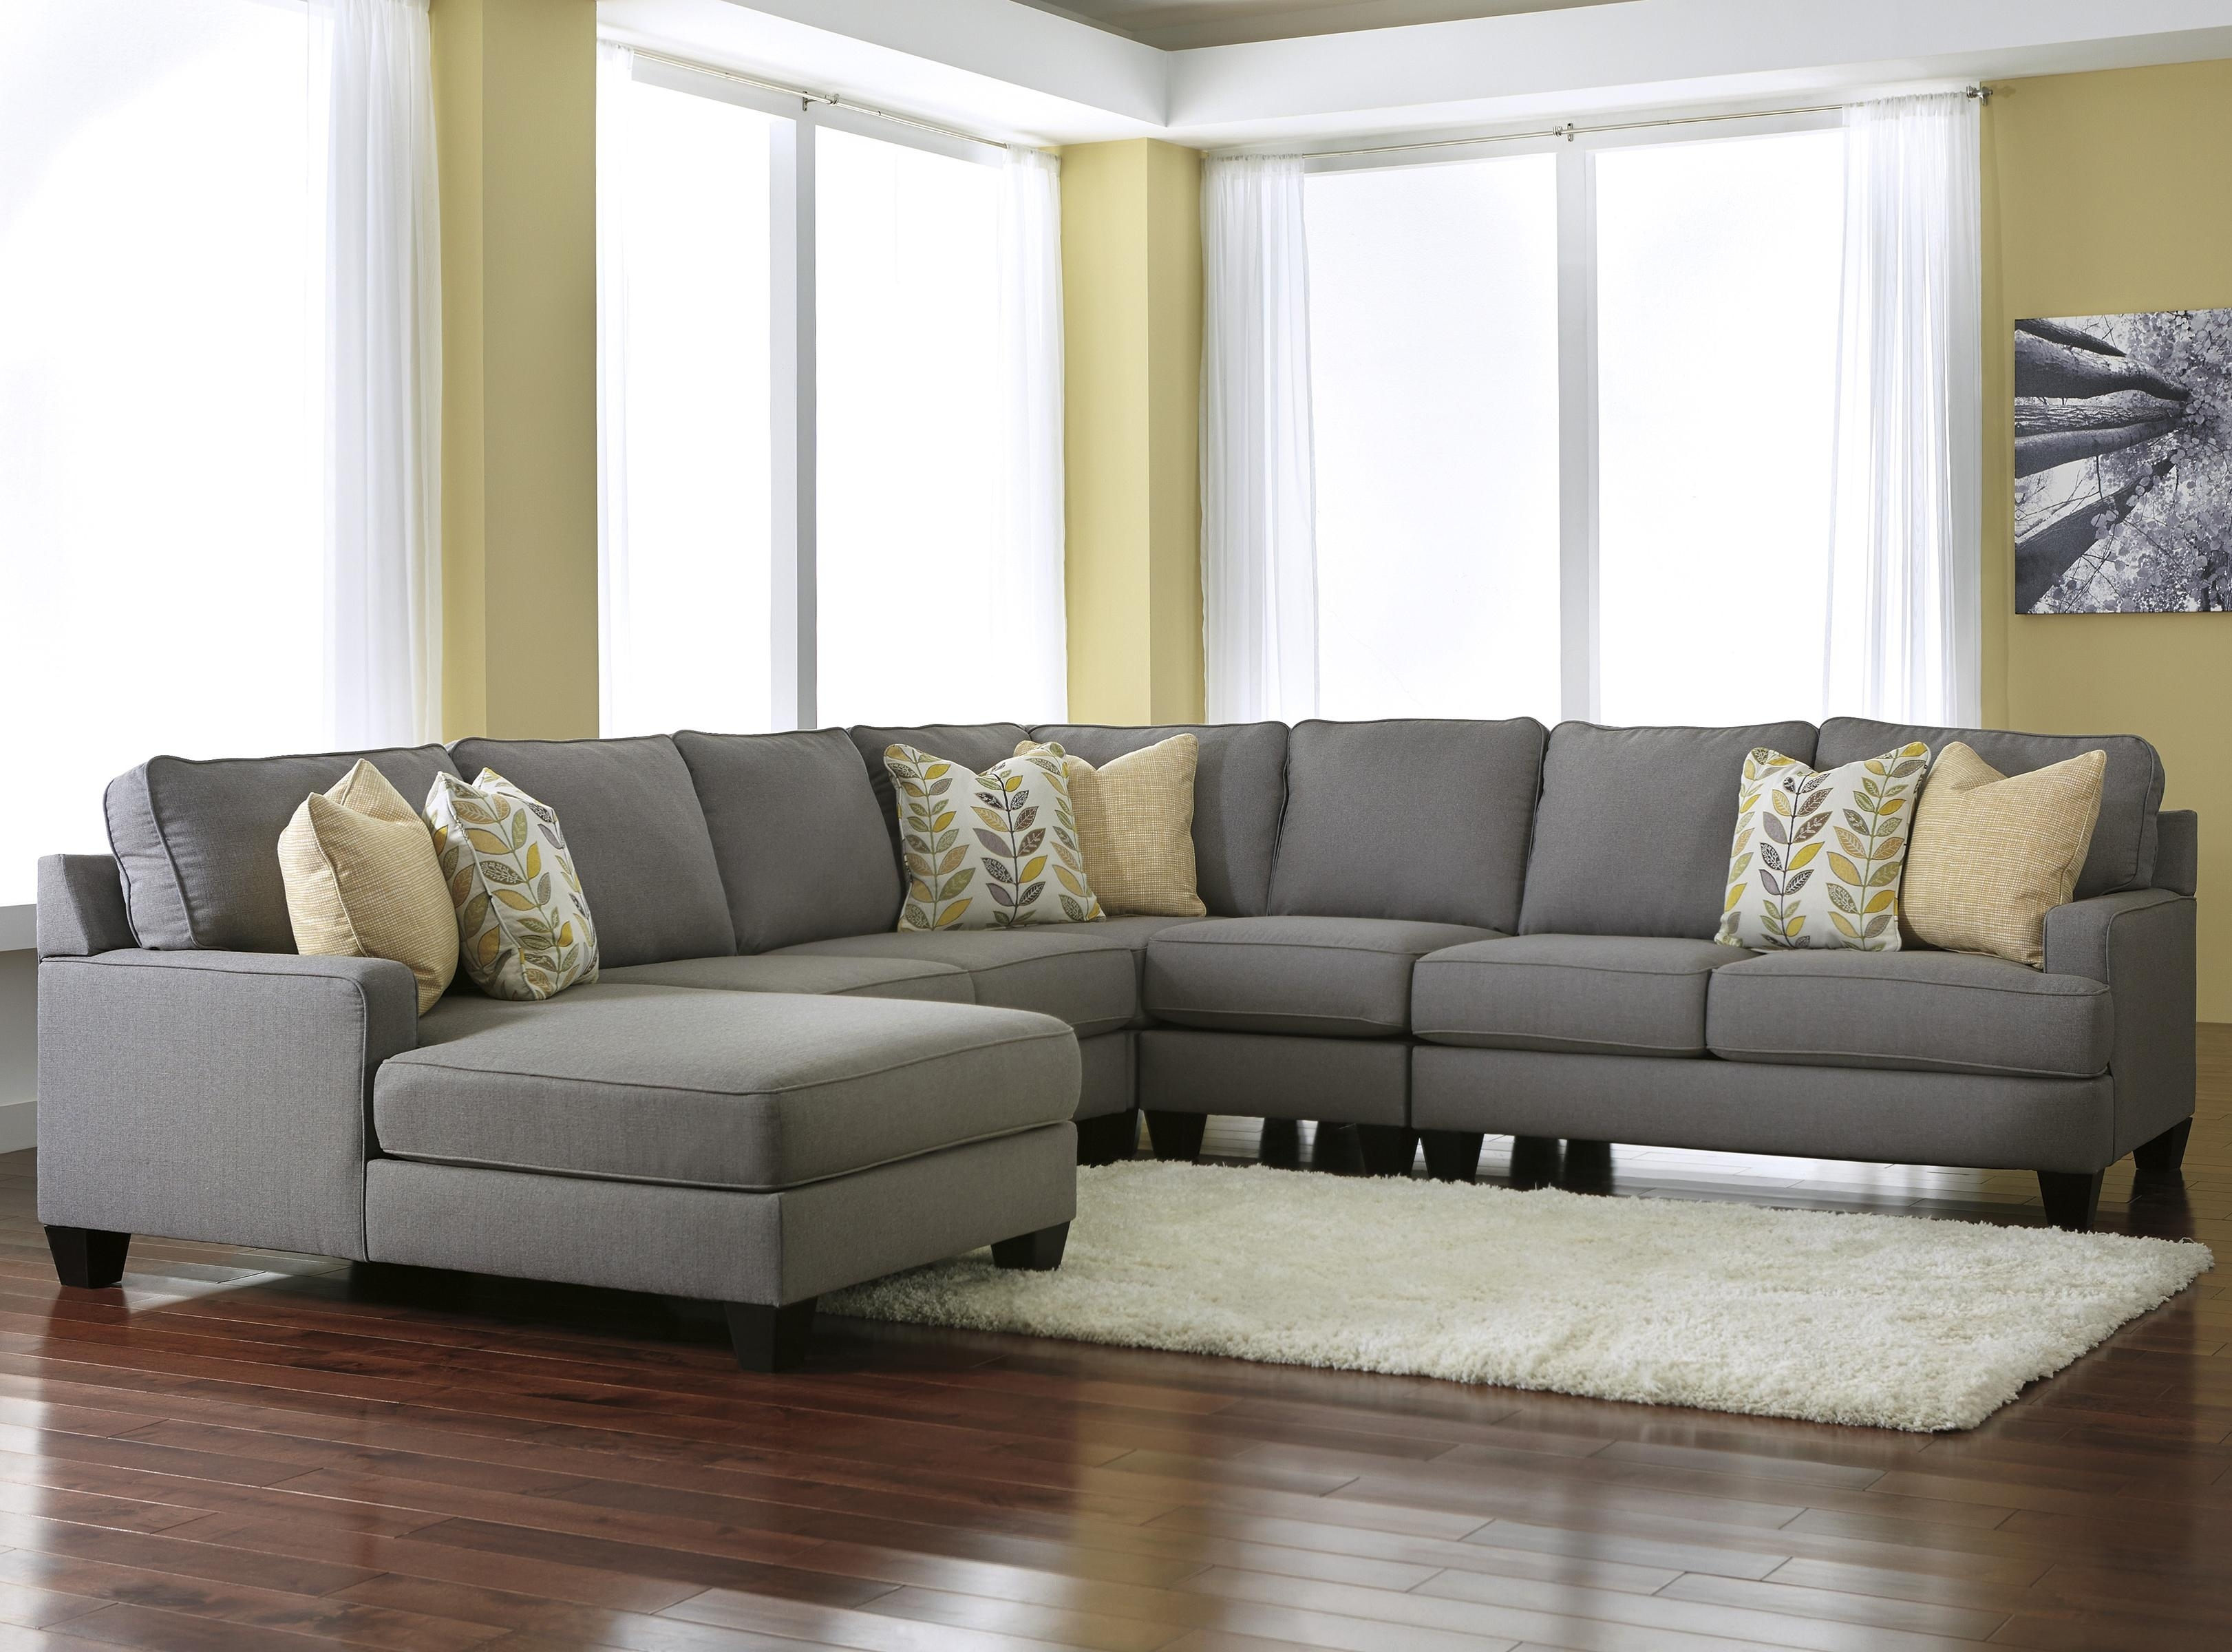 Signature Designashley Chamberly – Alloy Modern 5 Piece In Mn Sectional Sofas (Image 9 of 10)